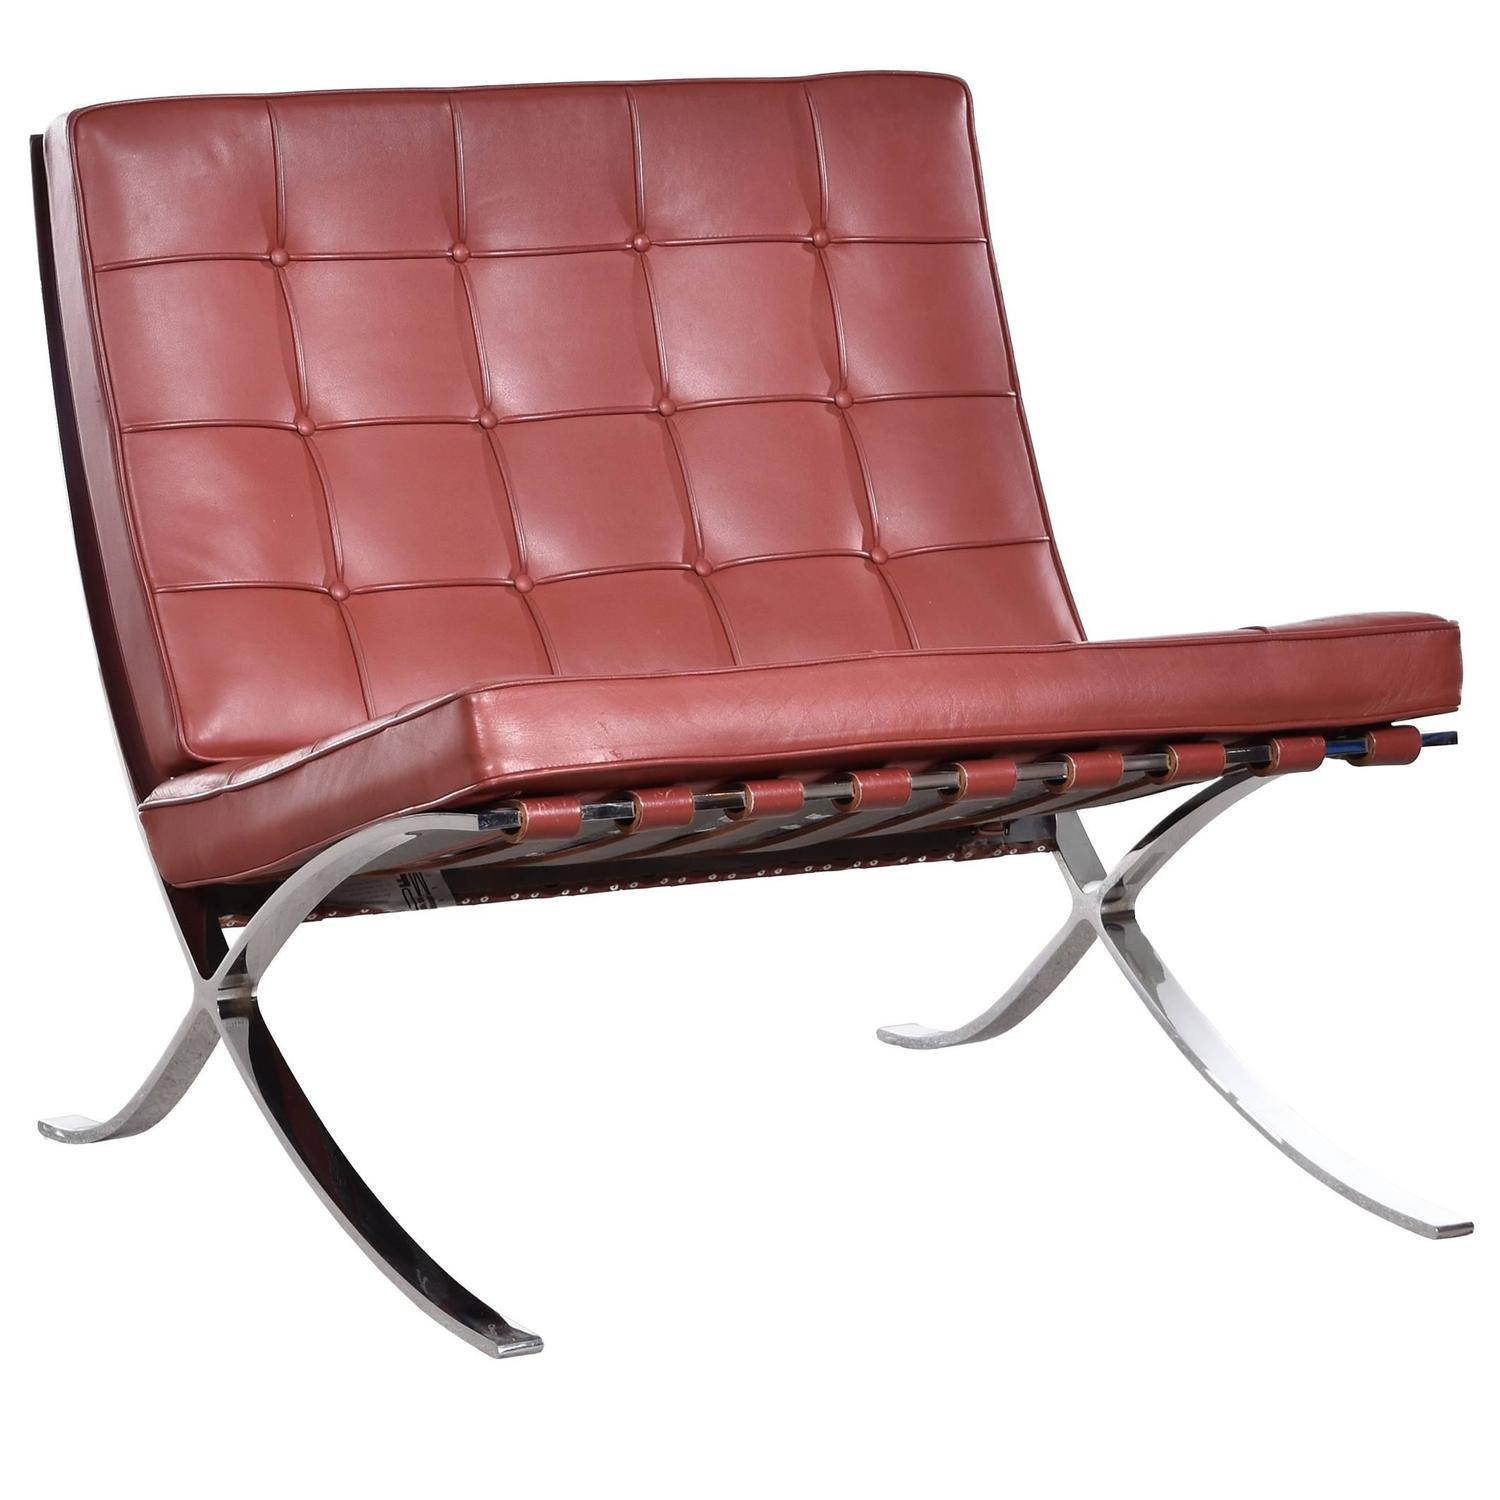 Barcelona Lounge Chair Barcelona Chair By Ludwig Mies Van Der Rohe For Knoll For